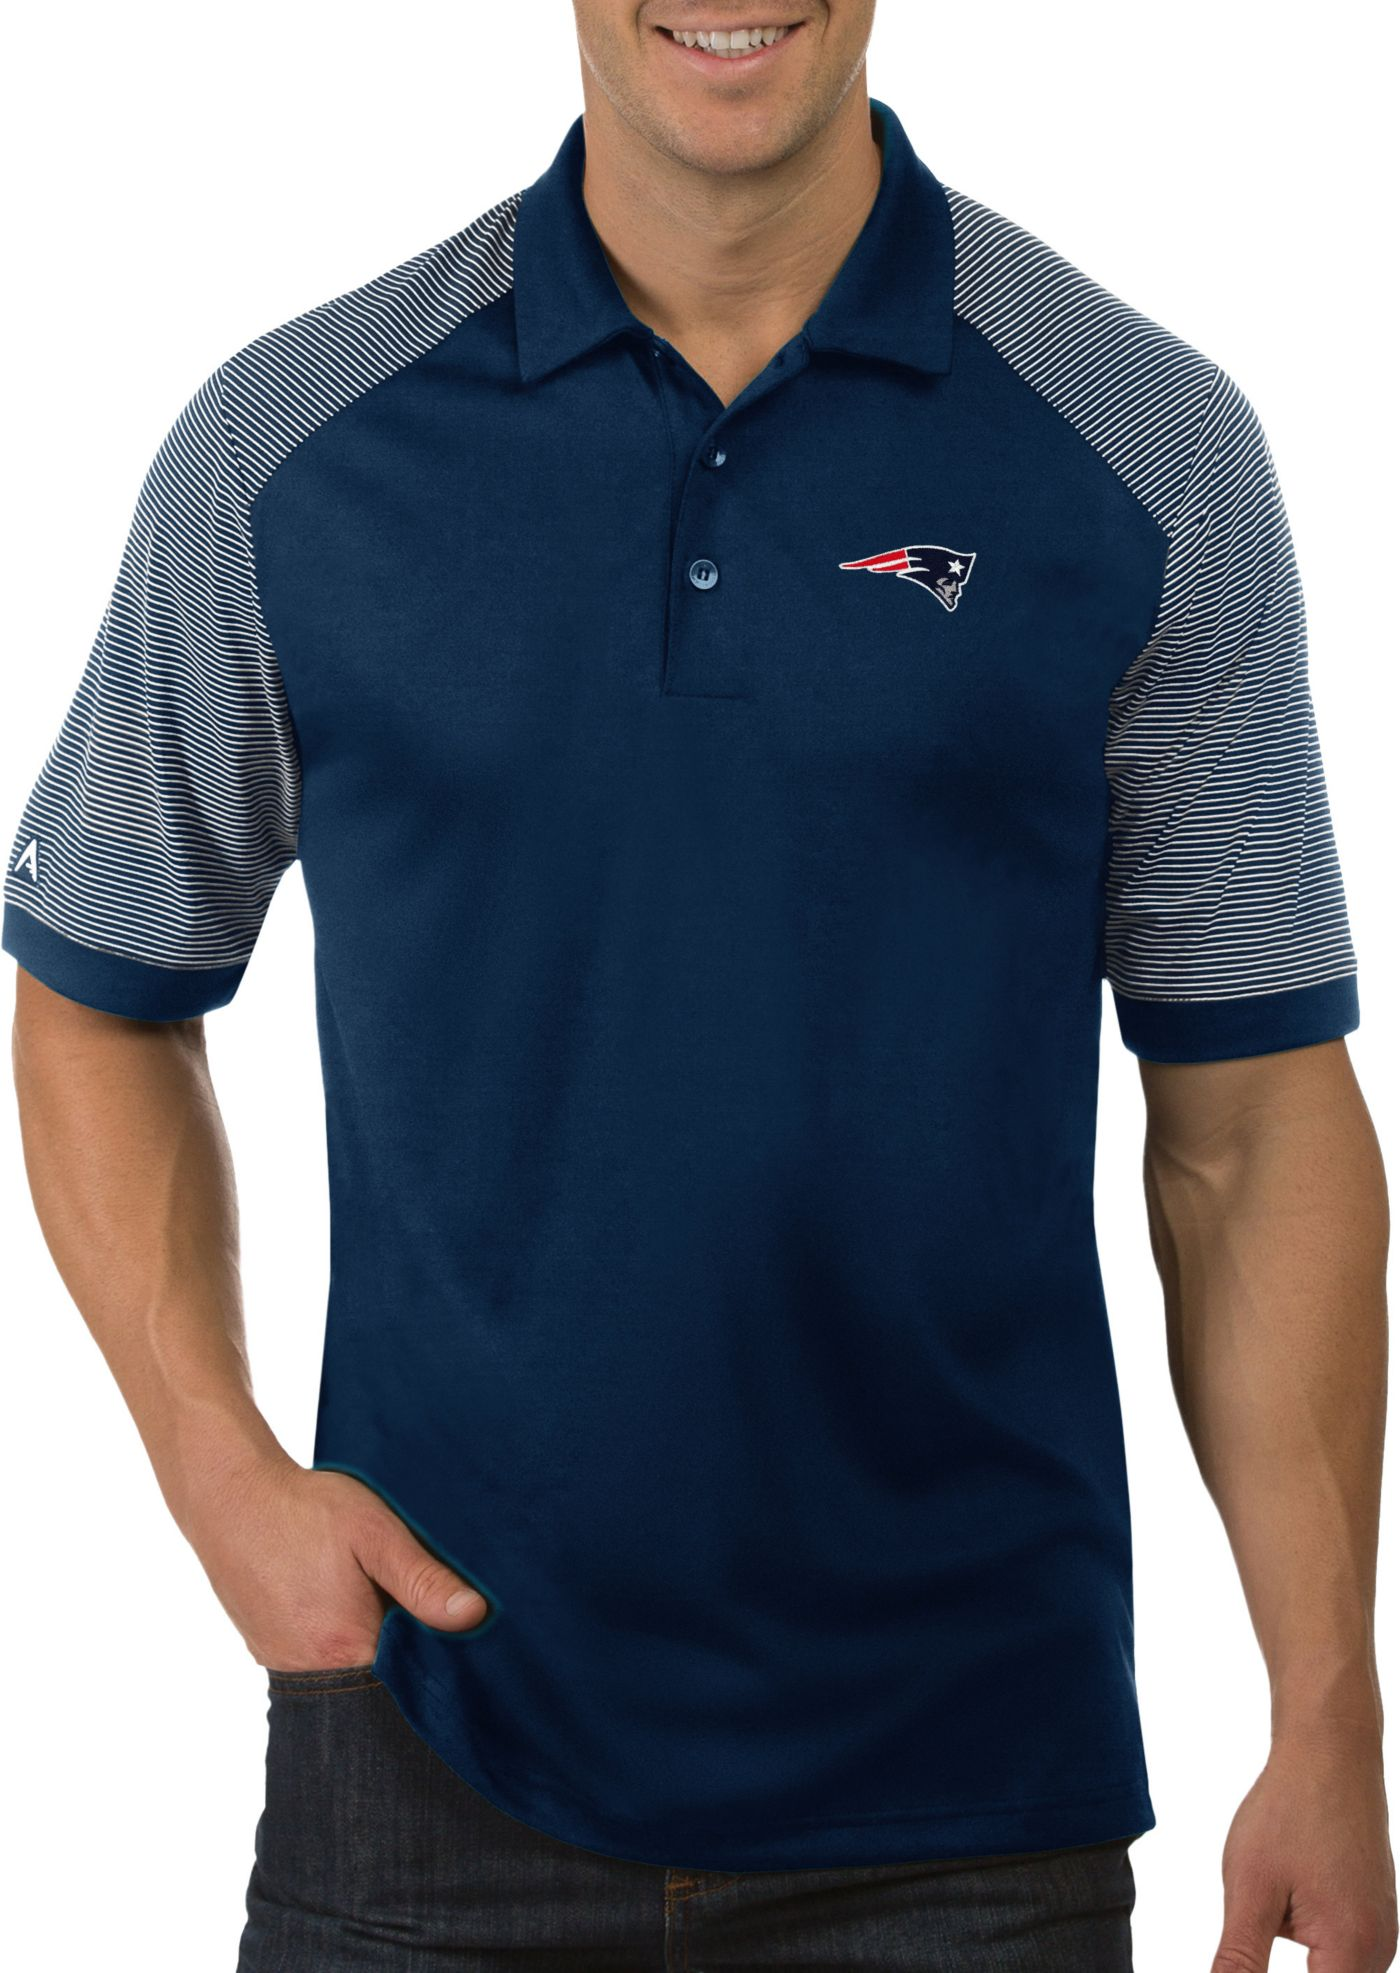 Antigua Men's New England Patriots Engage Navy Performance Polo